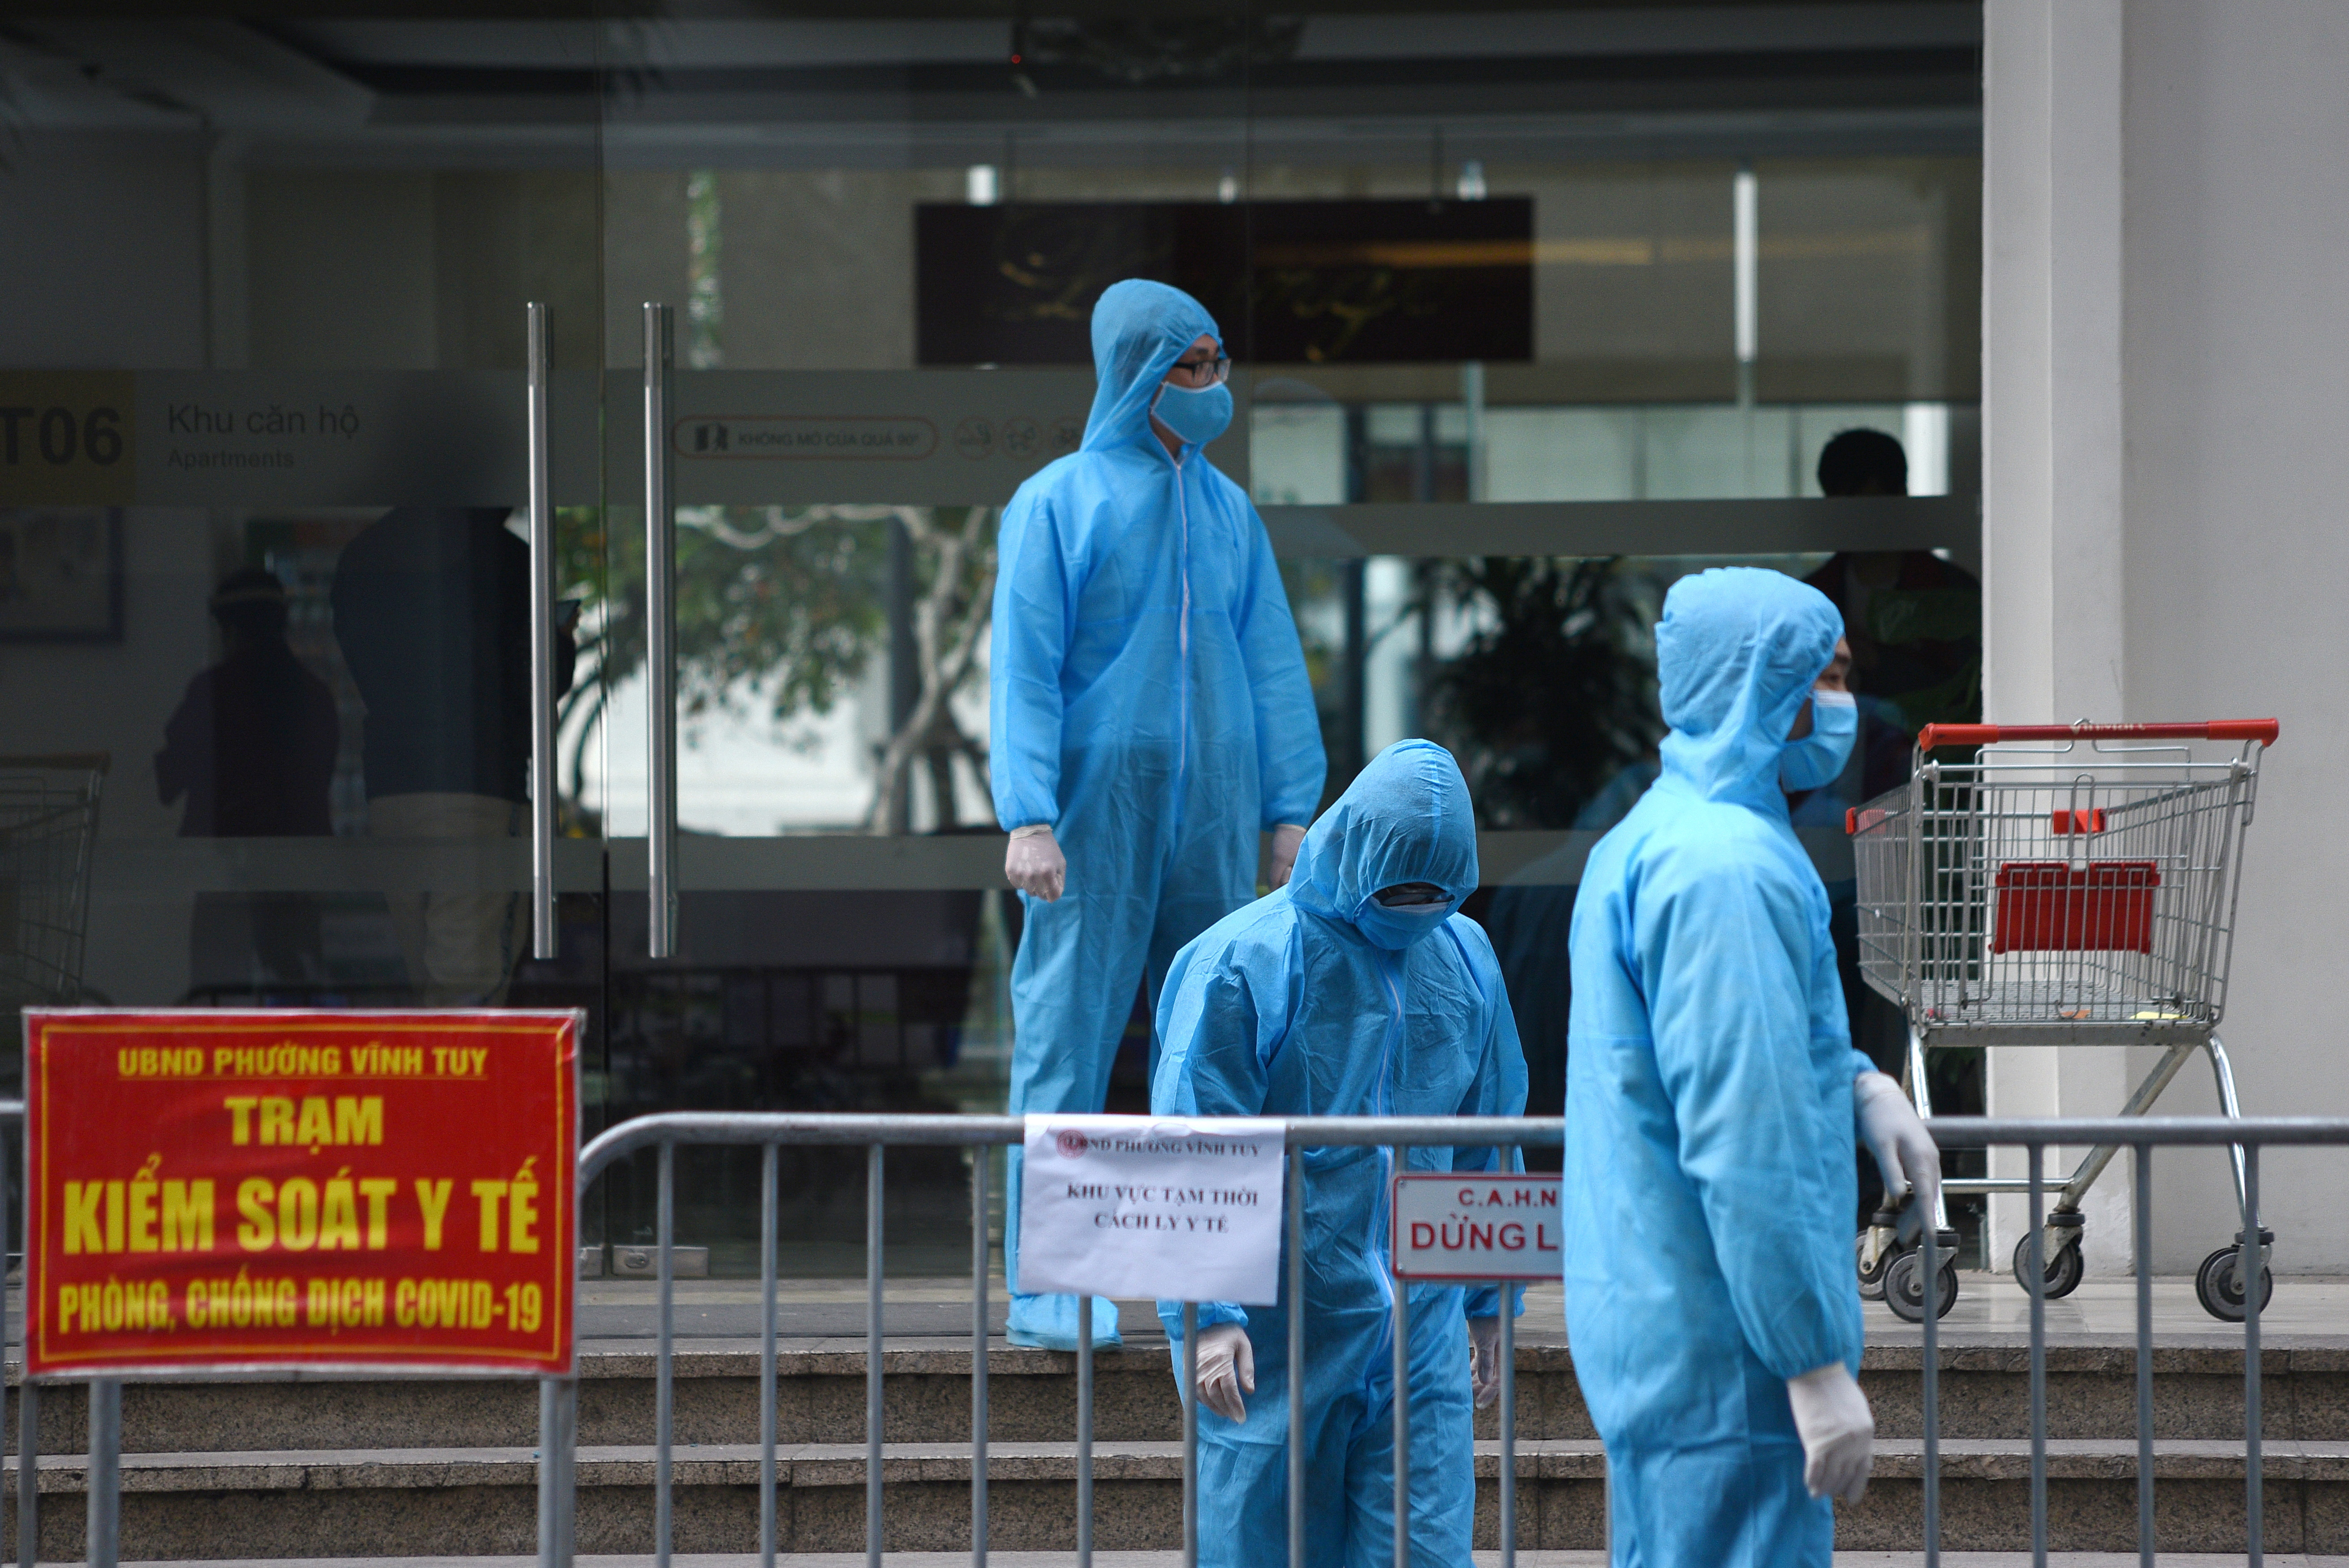 Medical workers in protective suits stand outside a quarantined building amid the coronavirus disease (COVID-19) outbreak in Hanoi, Vietnam, January 29, 2021. REUTERS/Thanh Hue